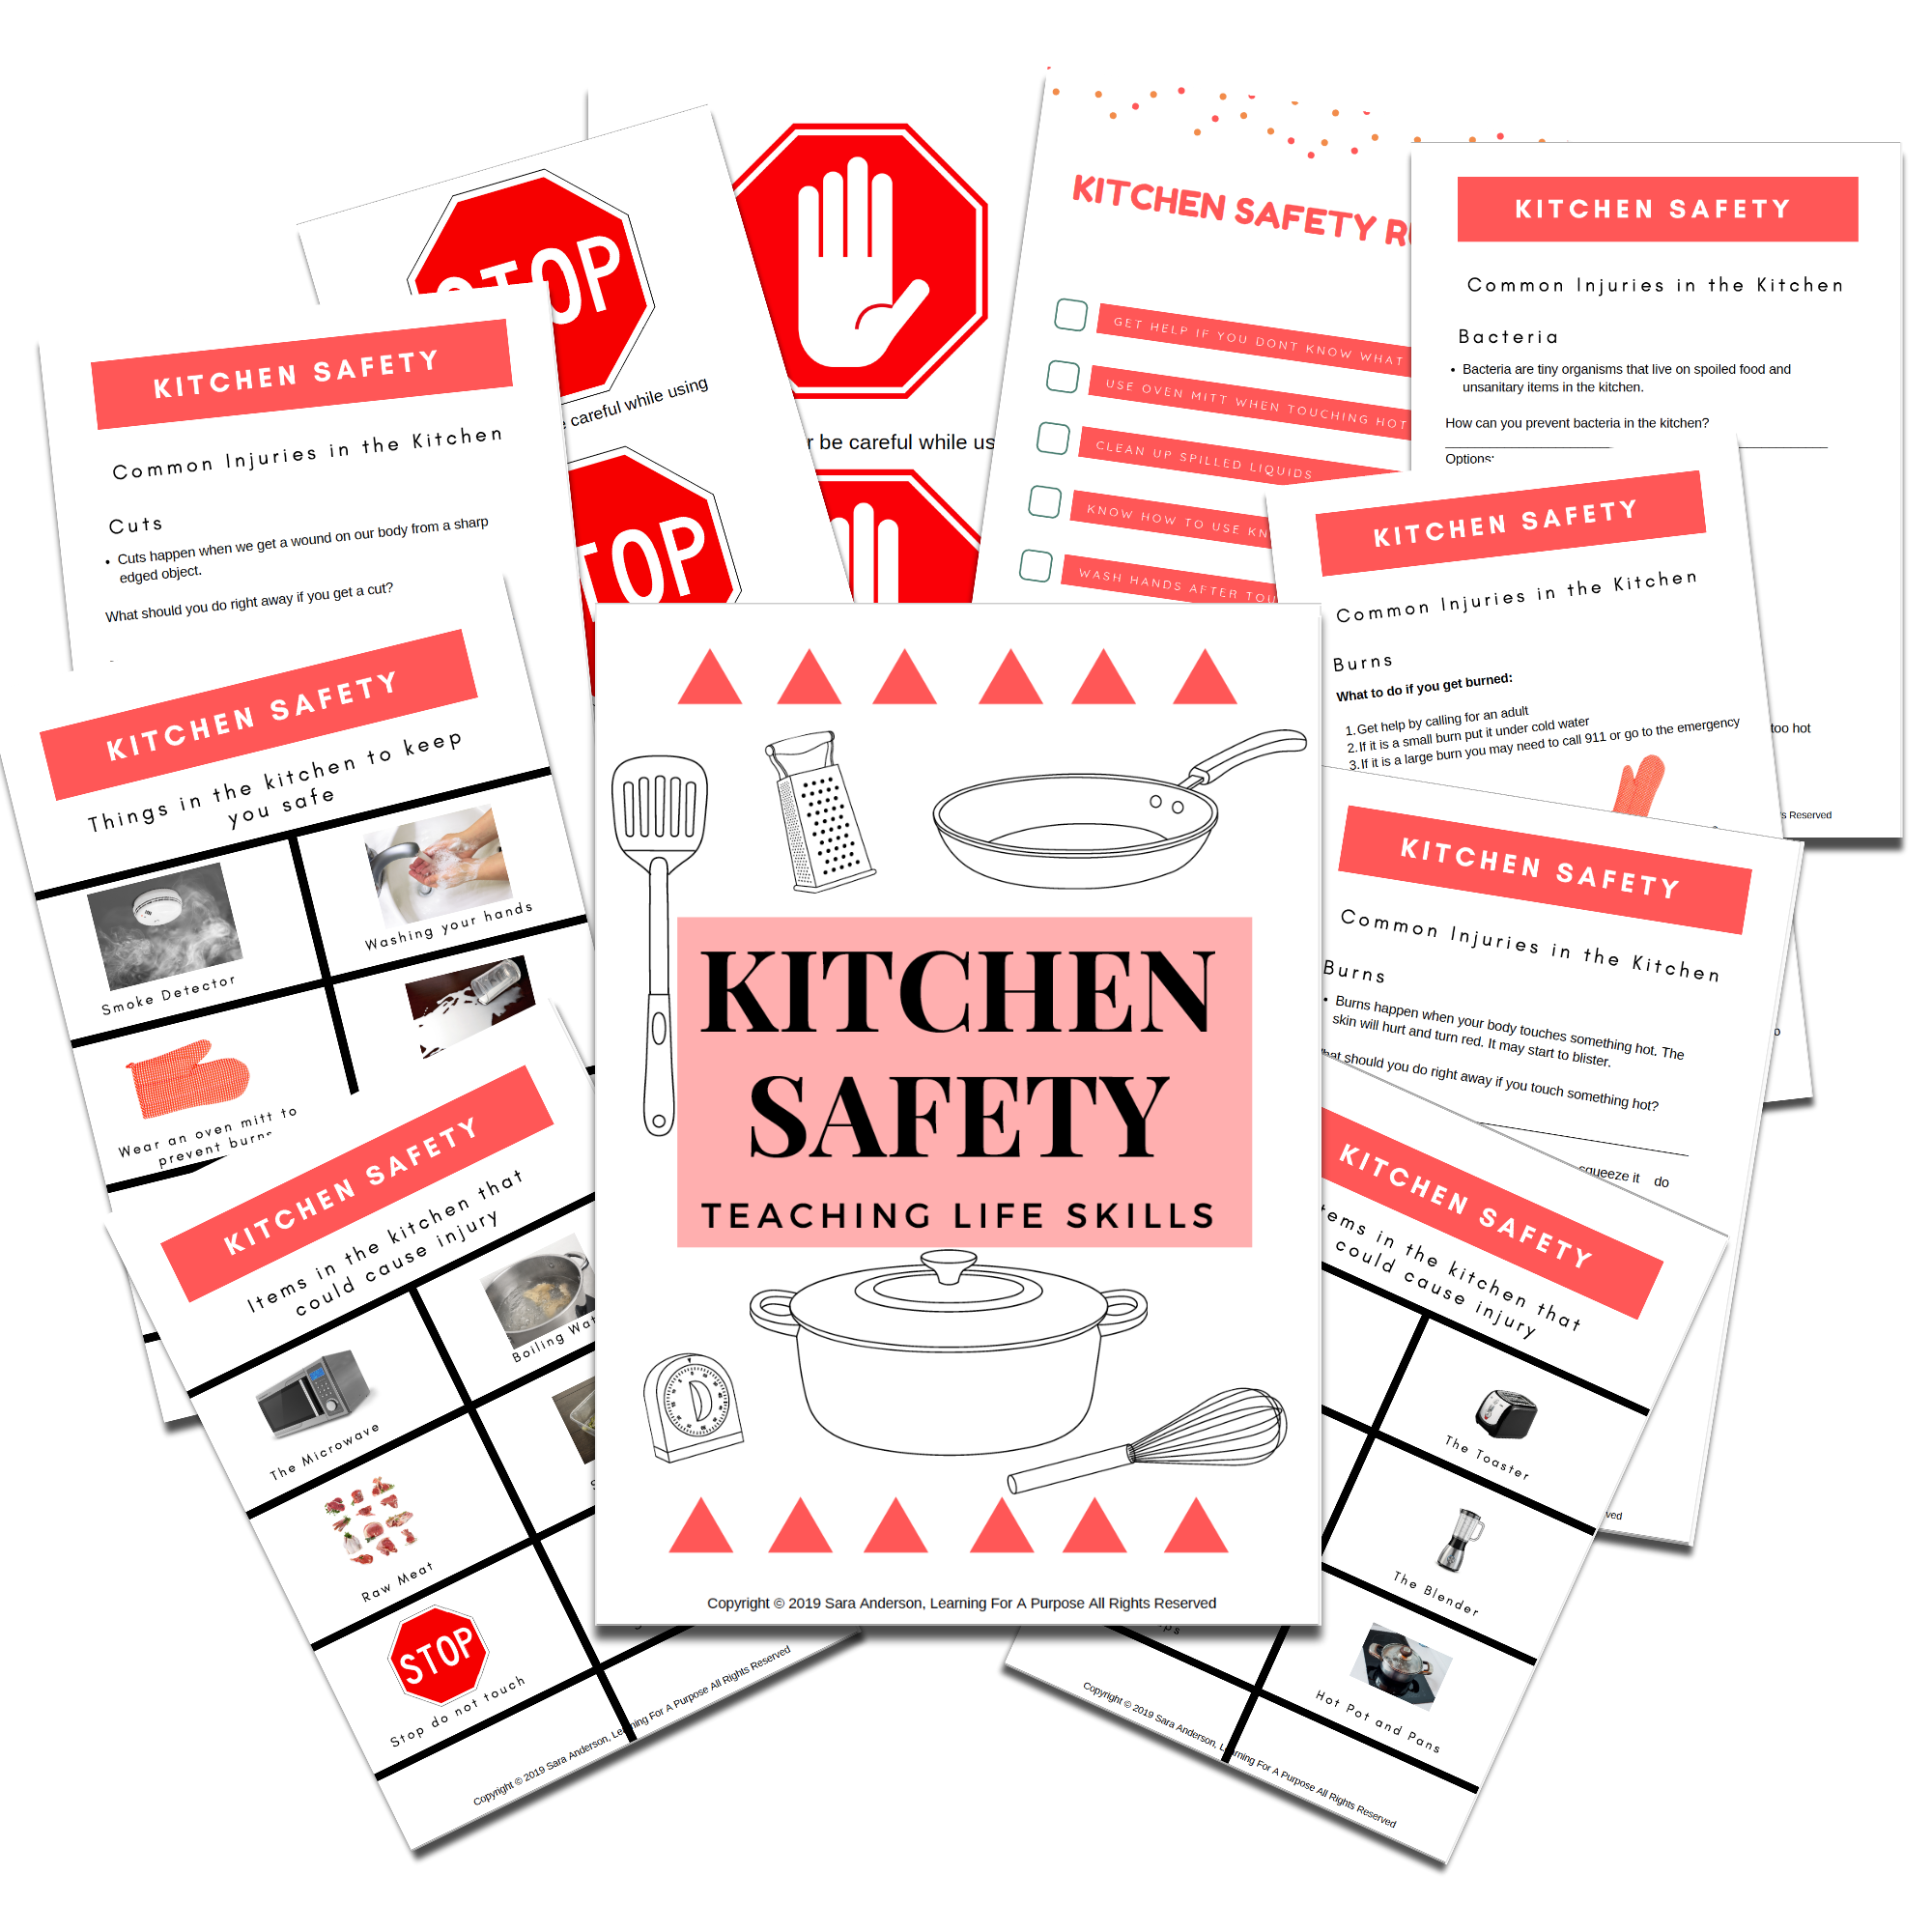 Kitchen Safety Display Image